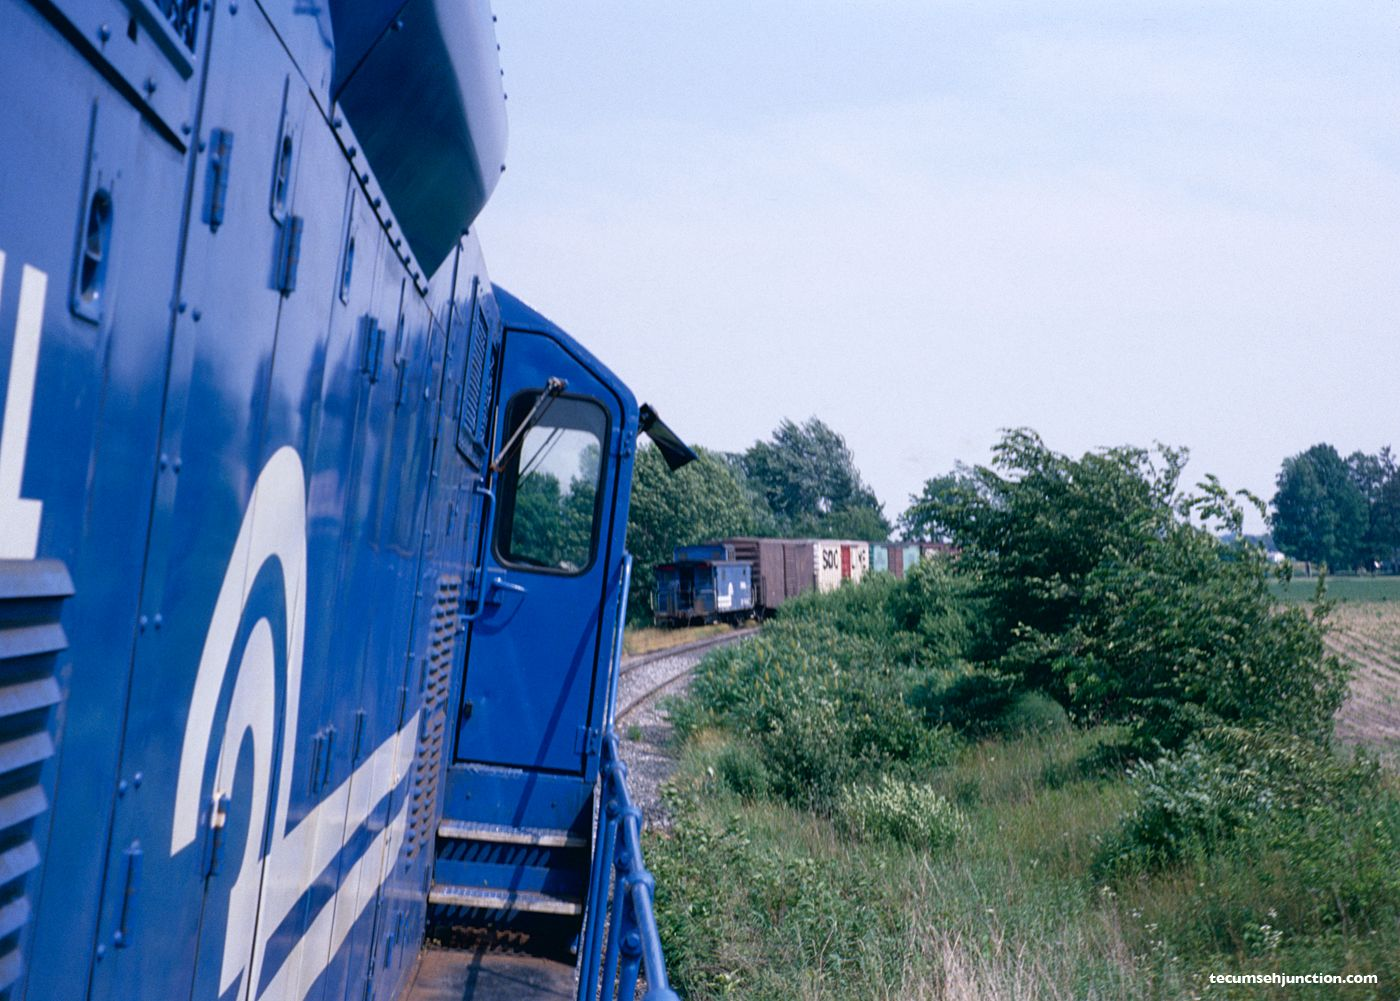 CSR-1 backs down to the Lenawee County Railroad interchange track at Lenawee Jct., MI on 26 June 1979